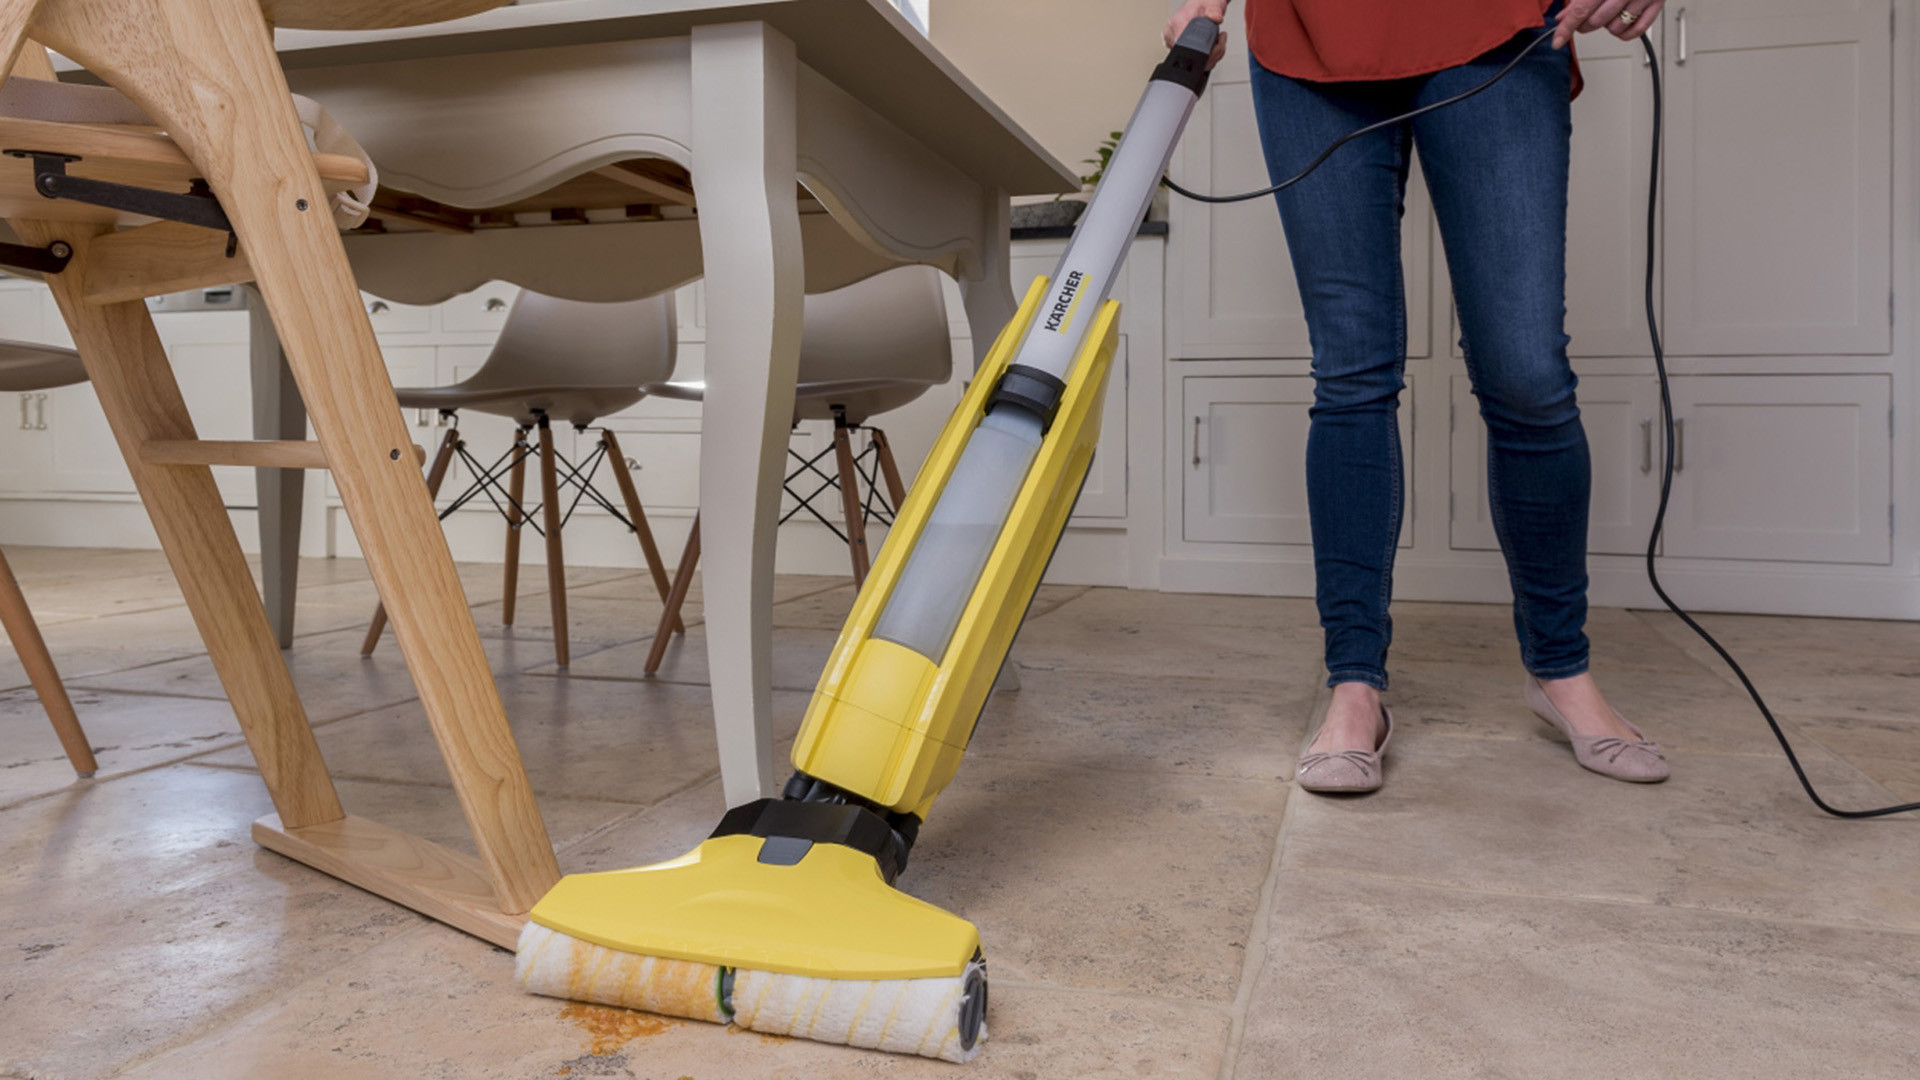 hardwood floor cleaners consumer reviews of karcher fc5 hard floor cleaner review trusted reviews throughout karcher fc5 5 1